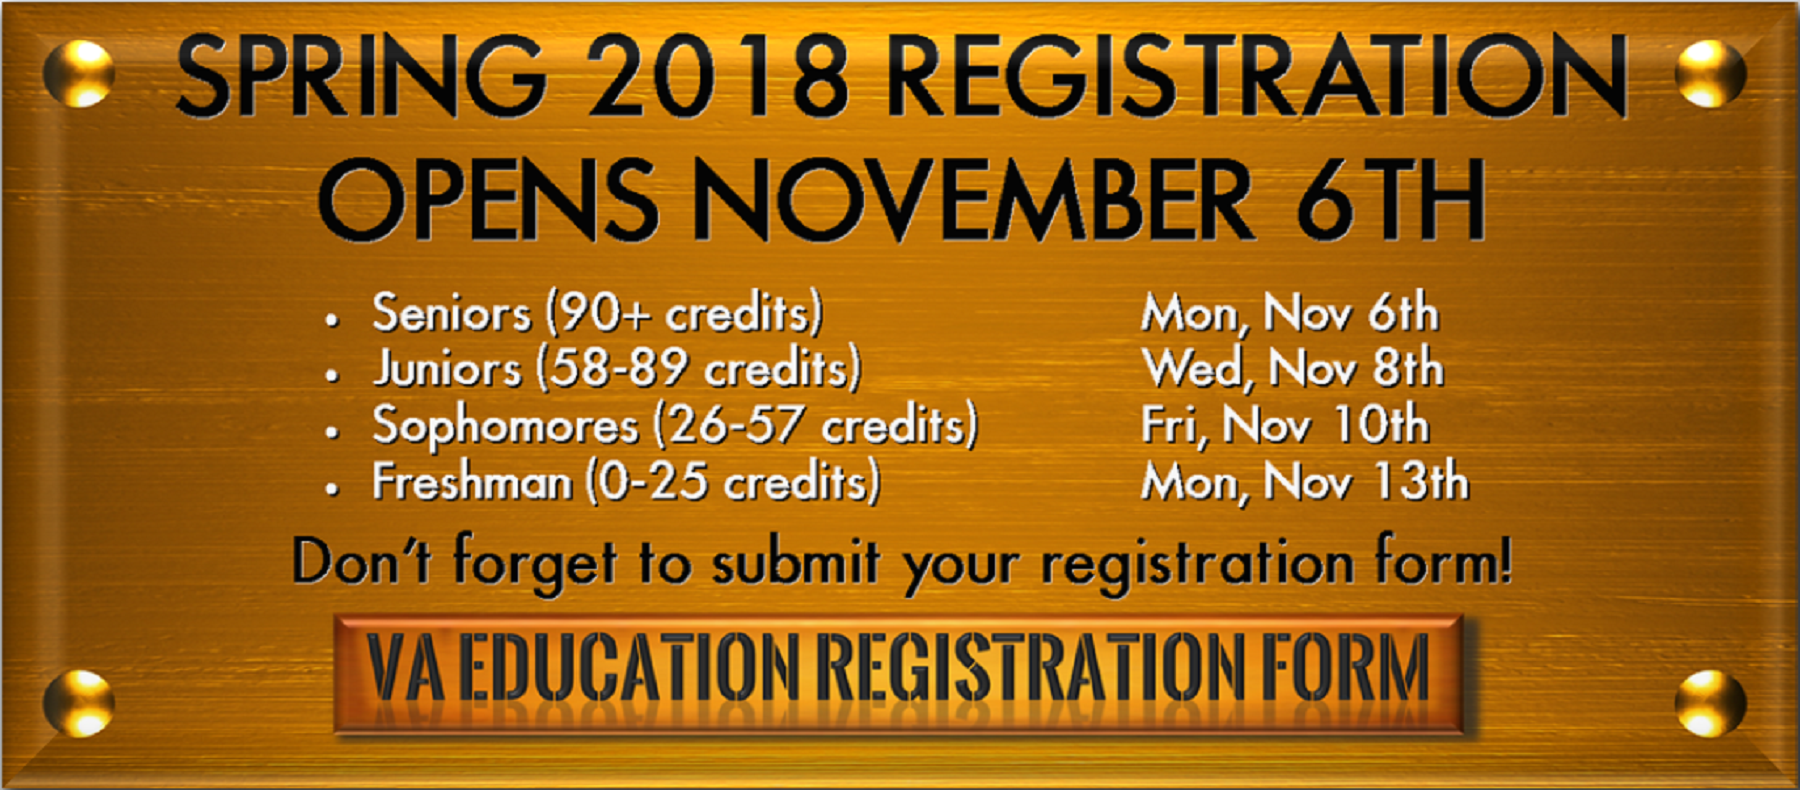 2018 Spring Reg dates: Seniors - Mon 11/6; Juniors - Wed 11/8; Sophmores - Fri 11/10; Freshman - Mon 11/13